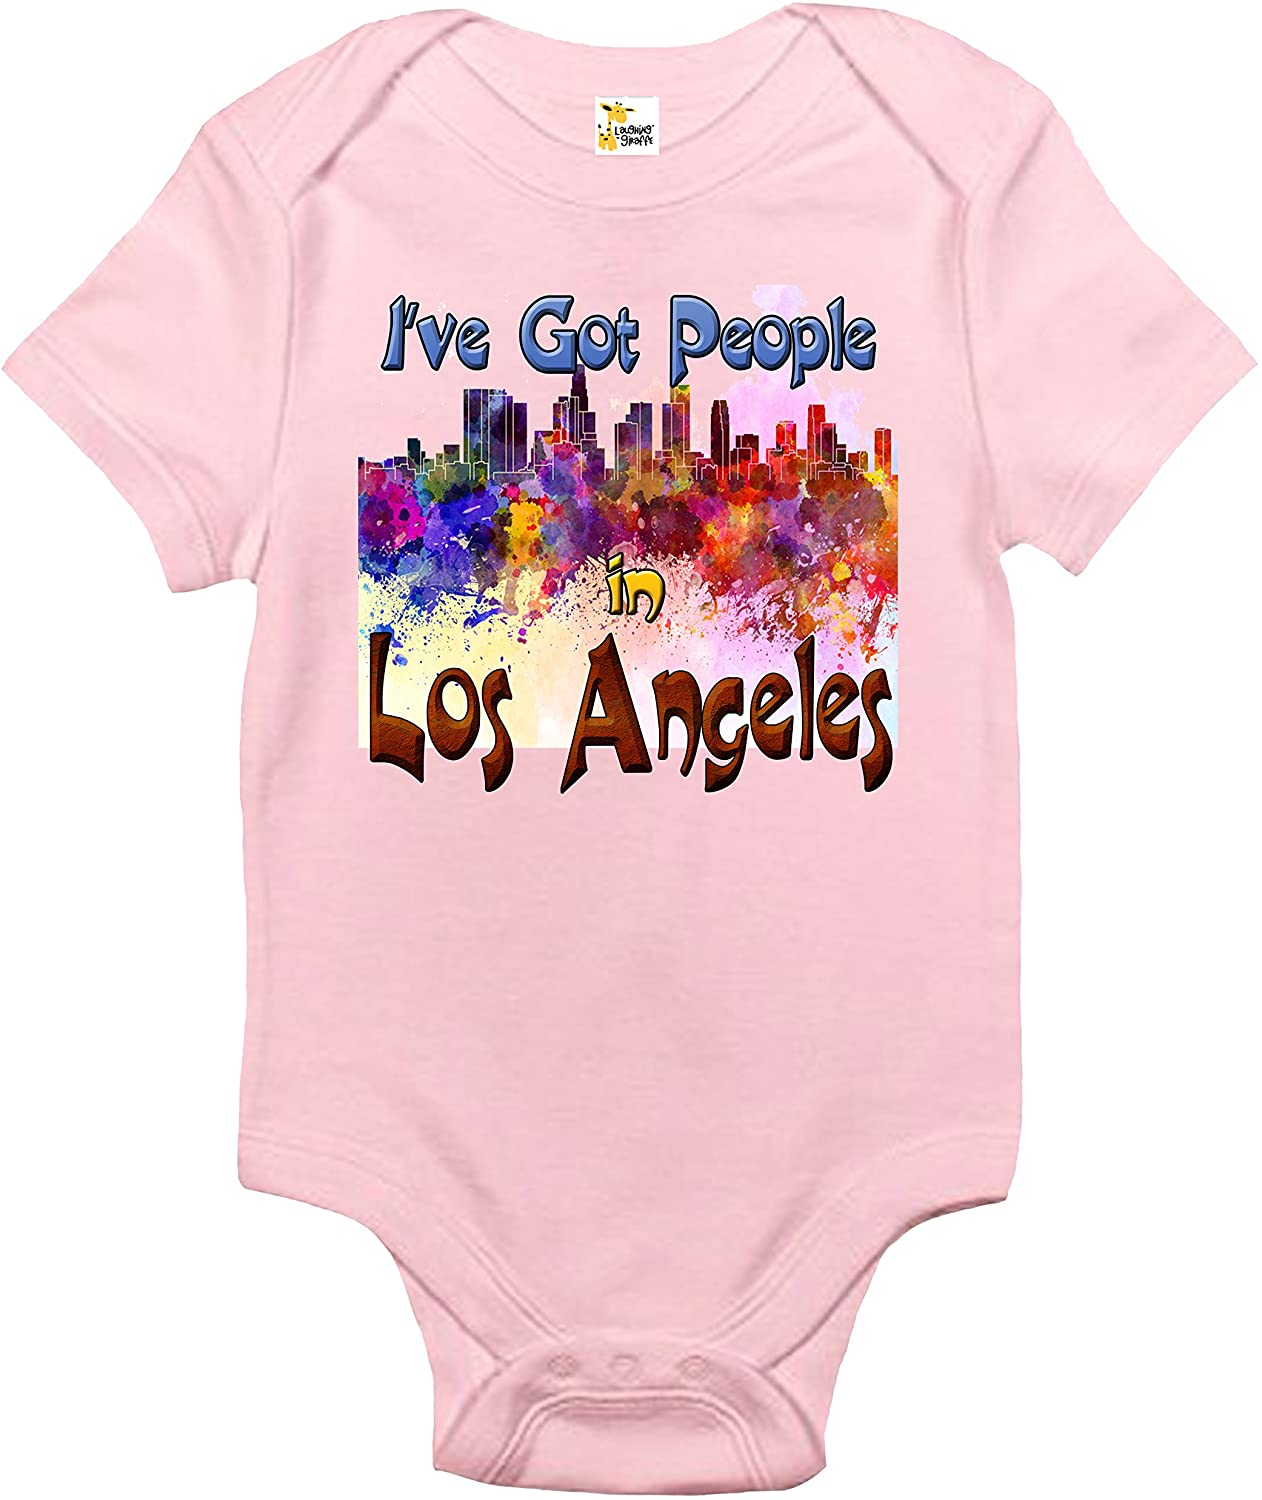 Baby Bodysuit - I've Got People in Los Angeles Baby Clothes for Infants